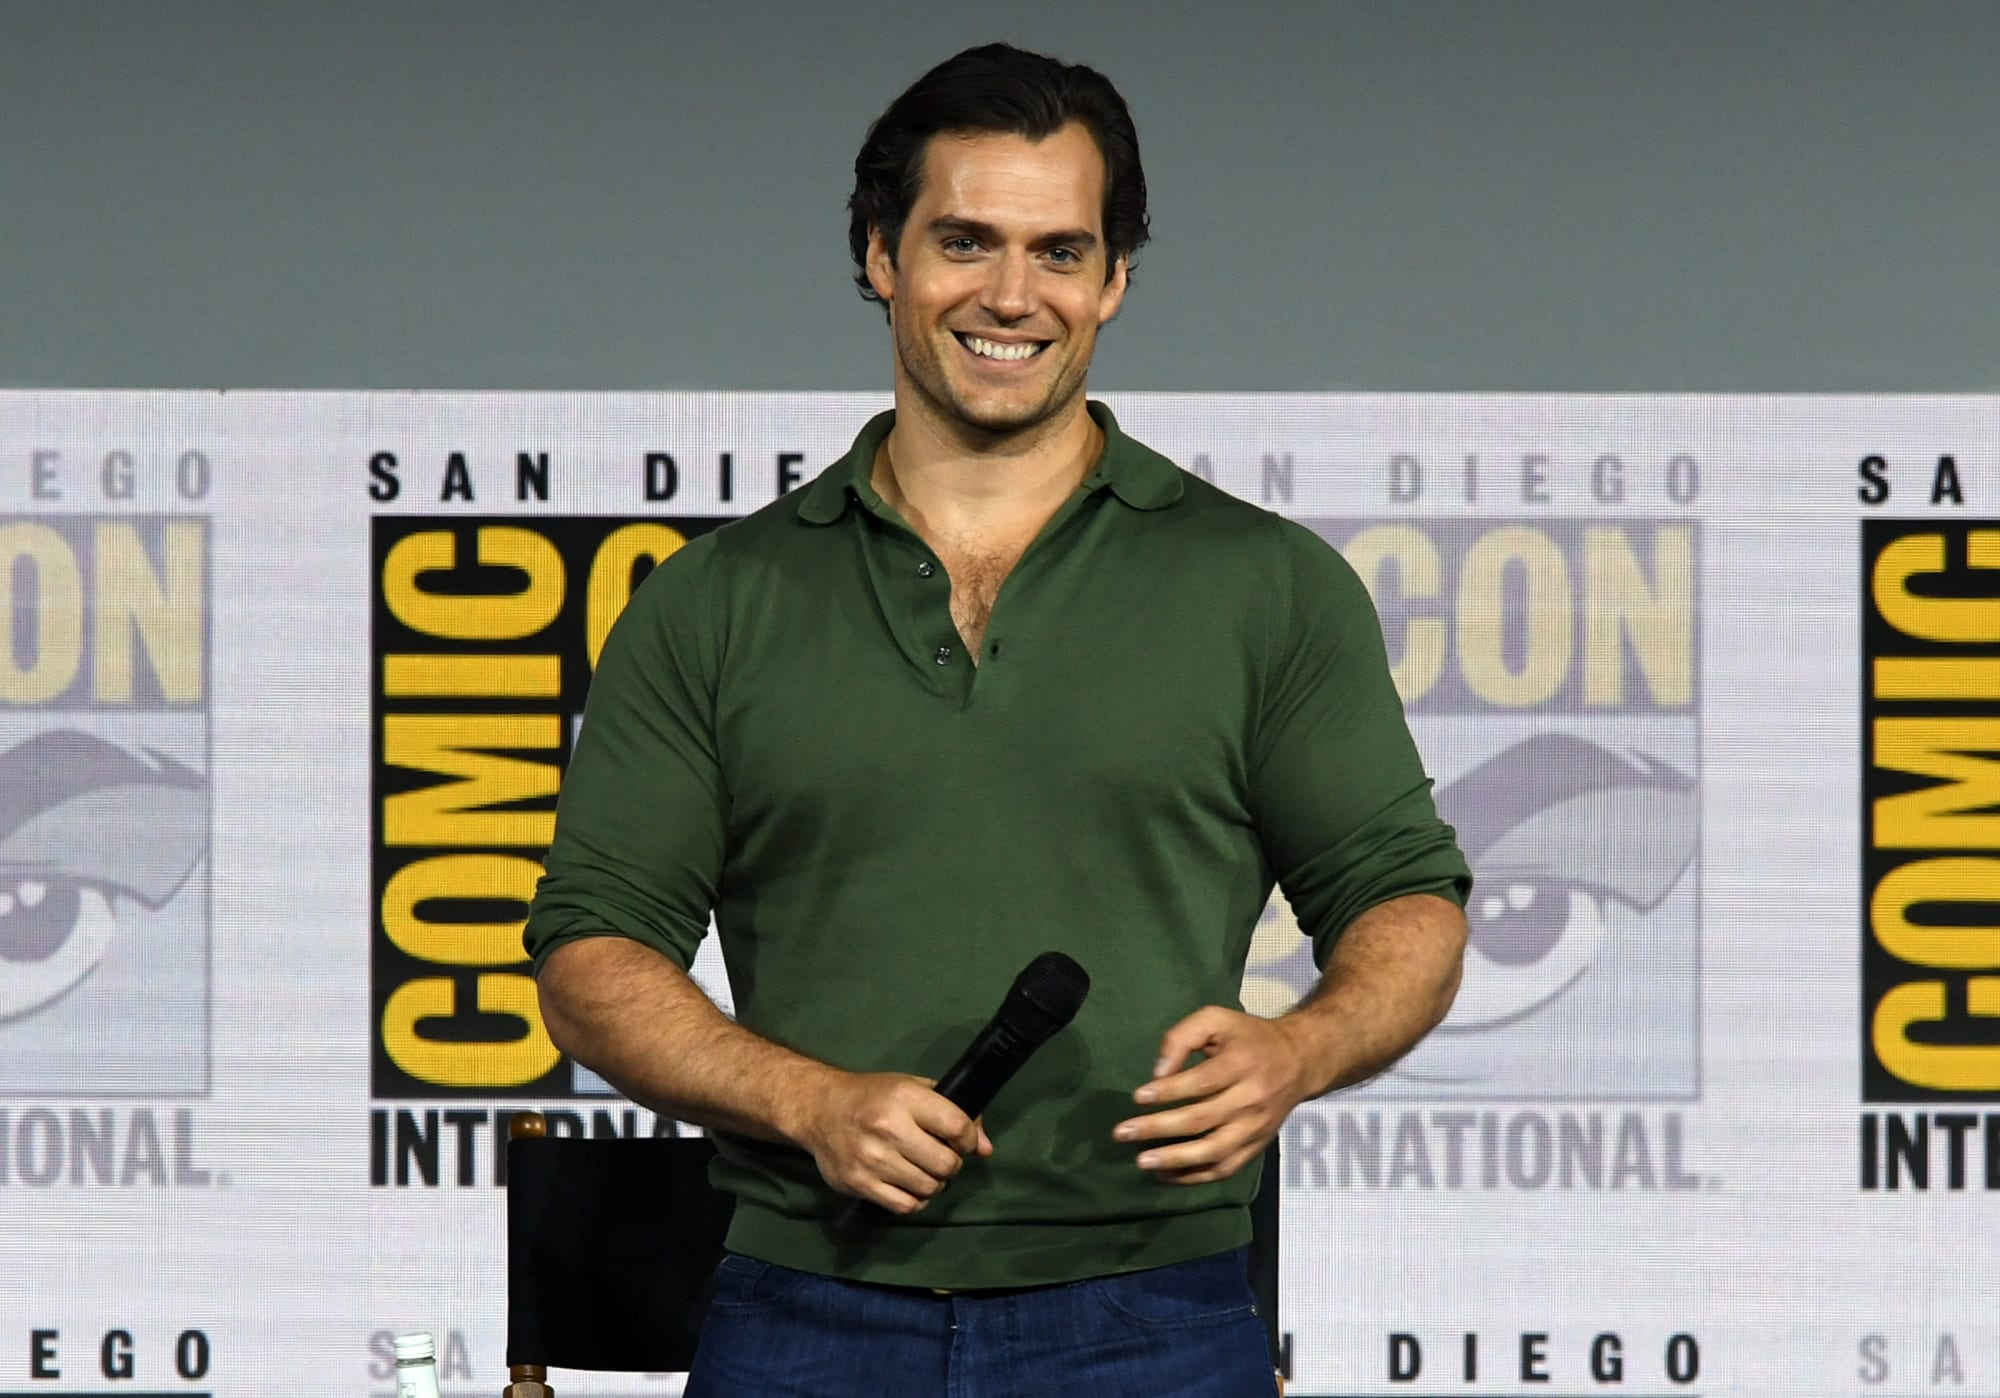 X-Men: Henry Cavill suits up as Cyclops in stunning new image